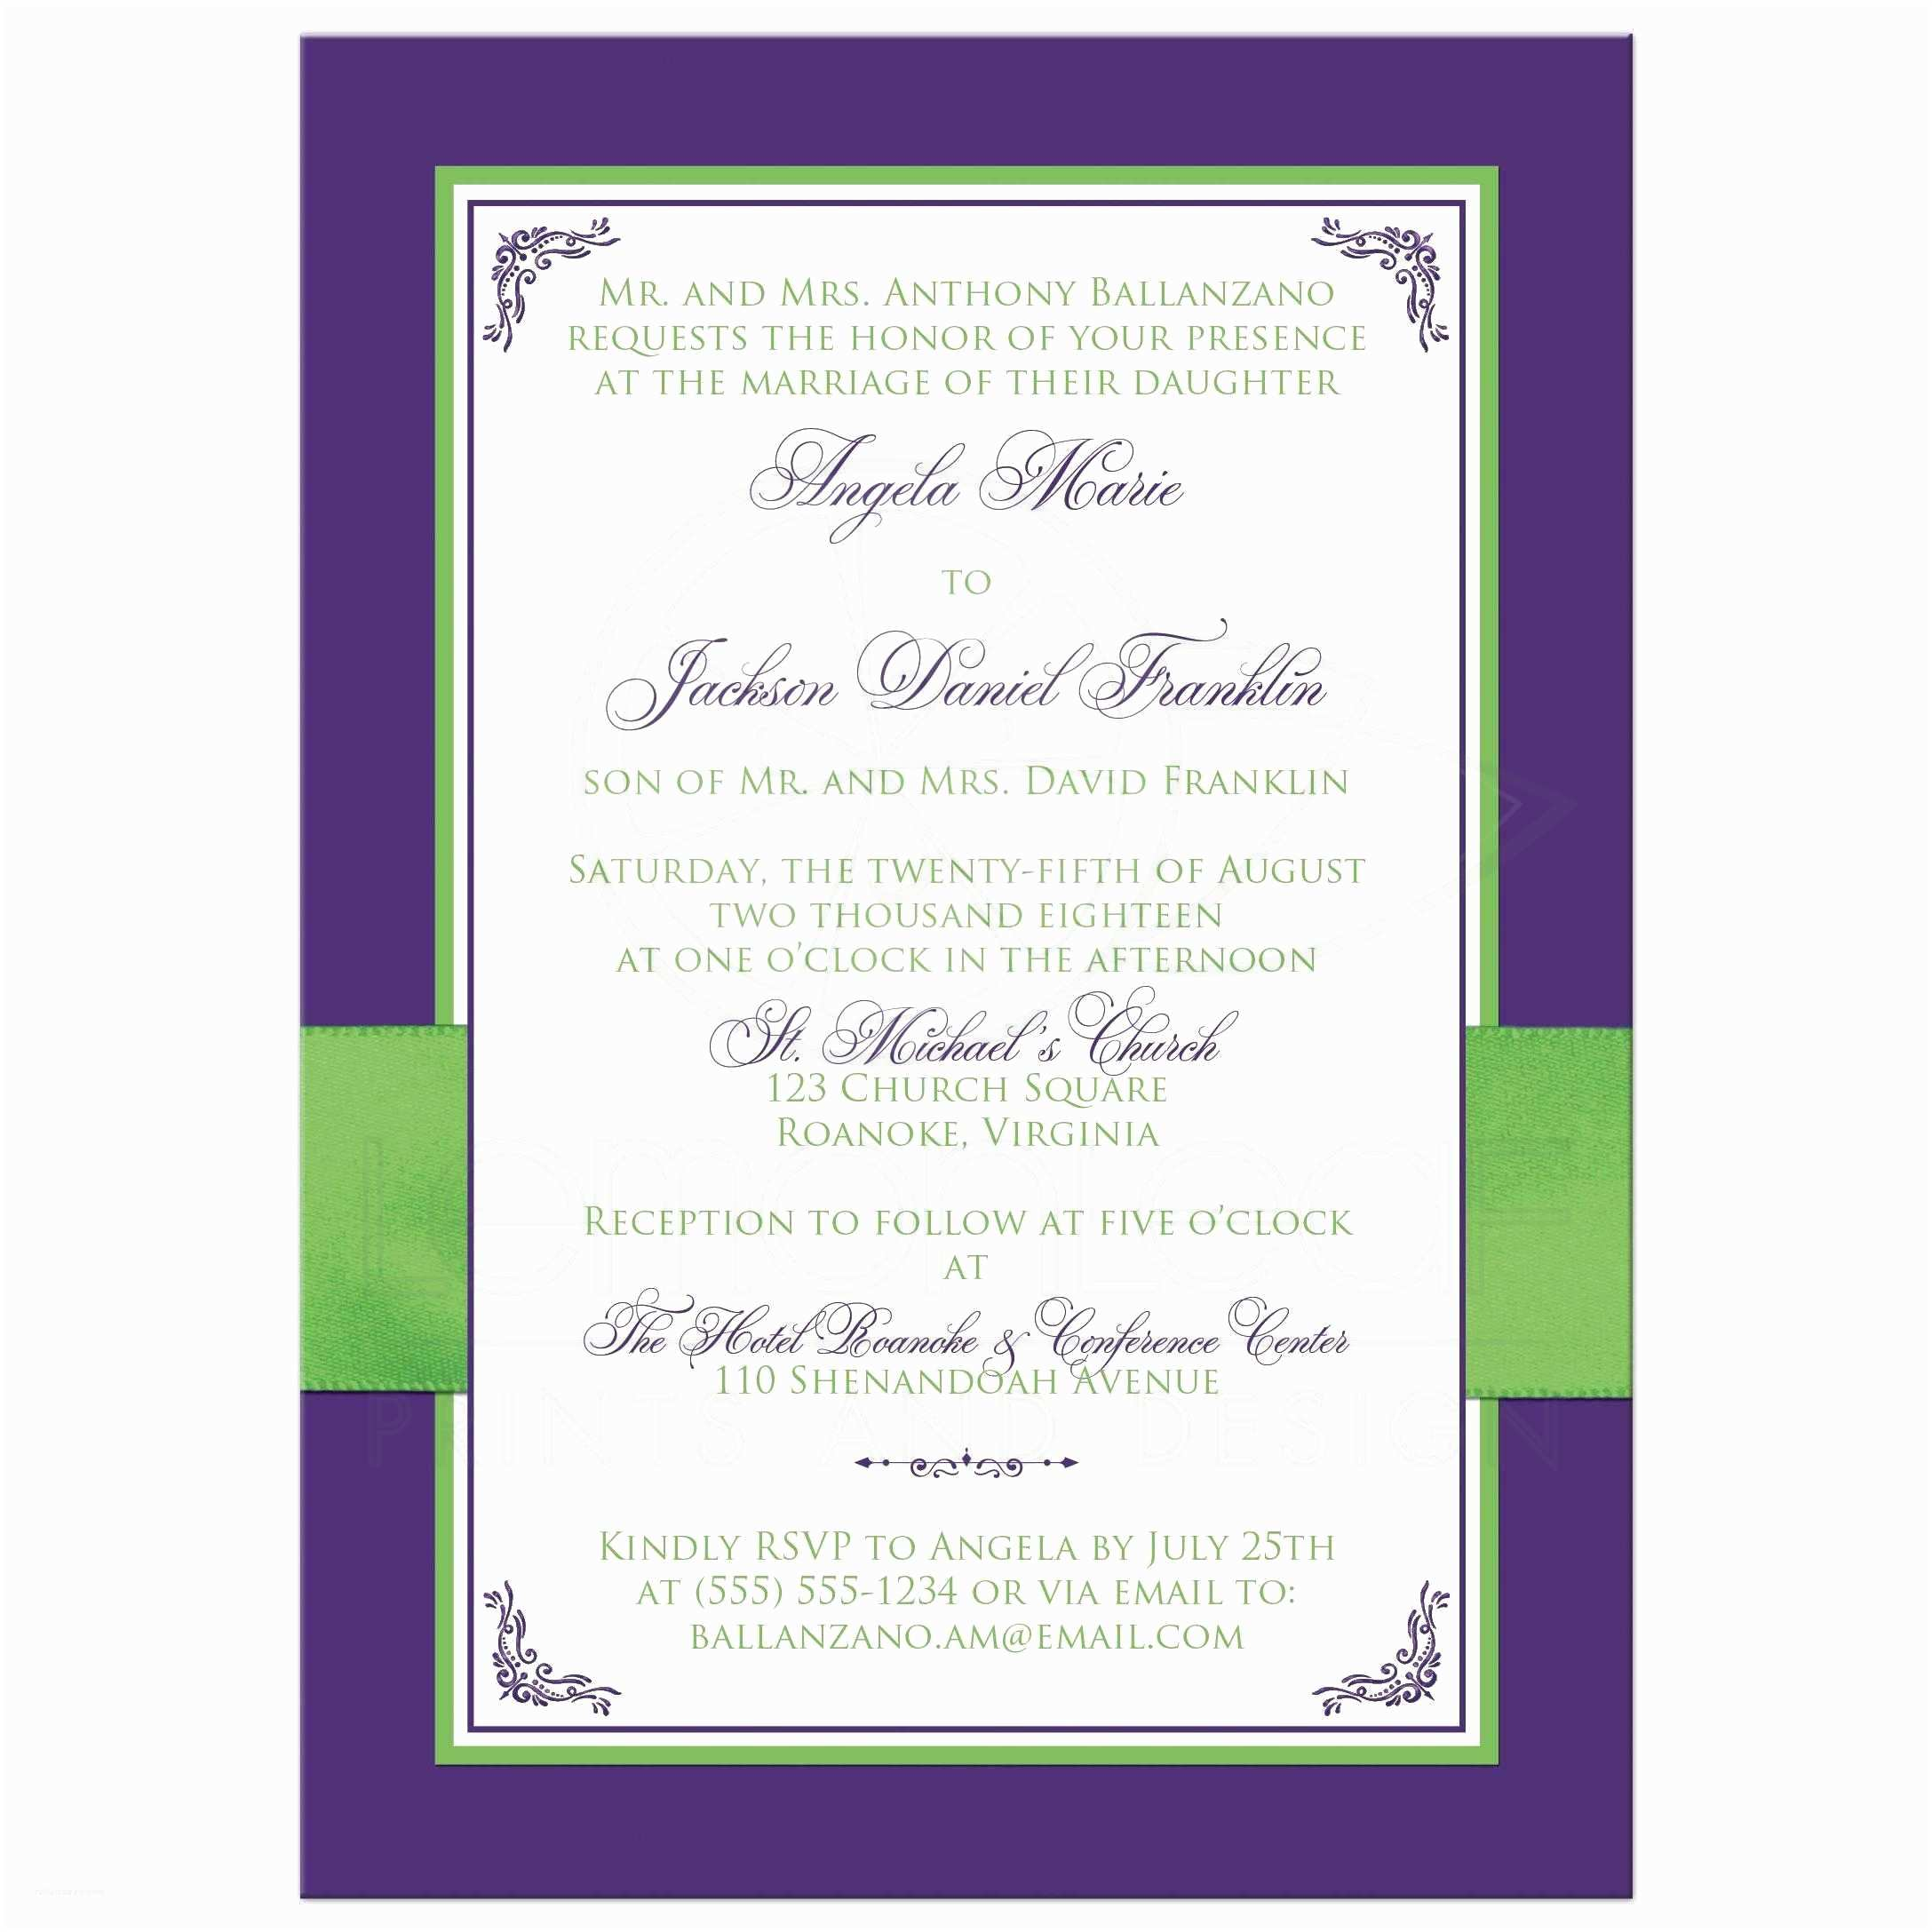 Back Of Wedding Invitation Lime Green White Purple Floral Wedding Invitation